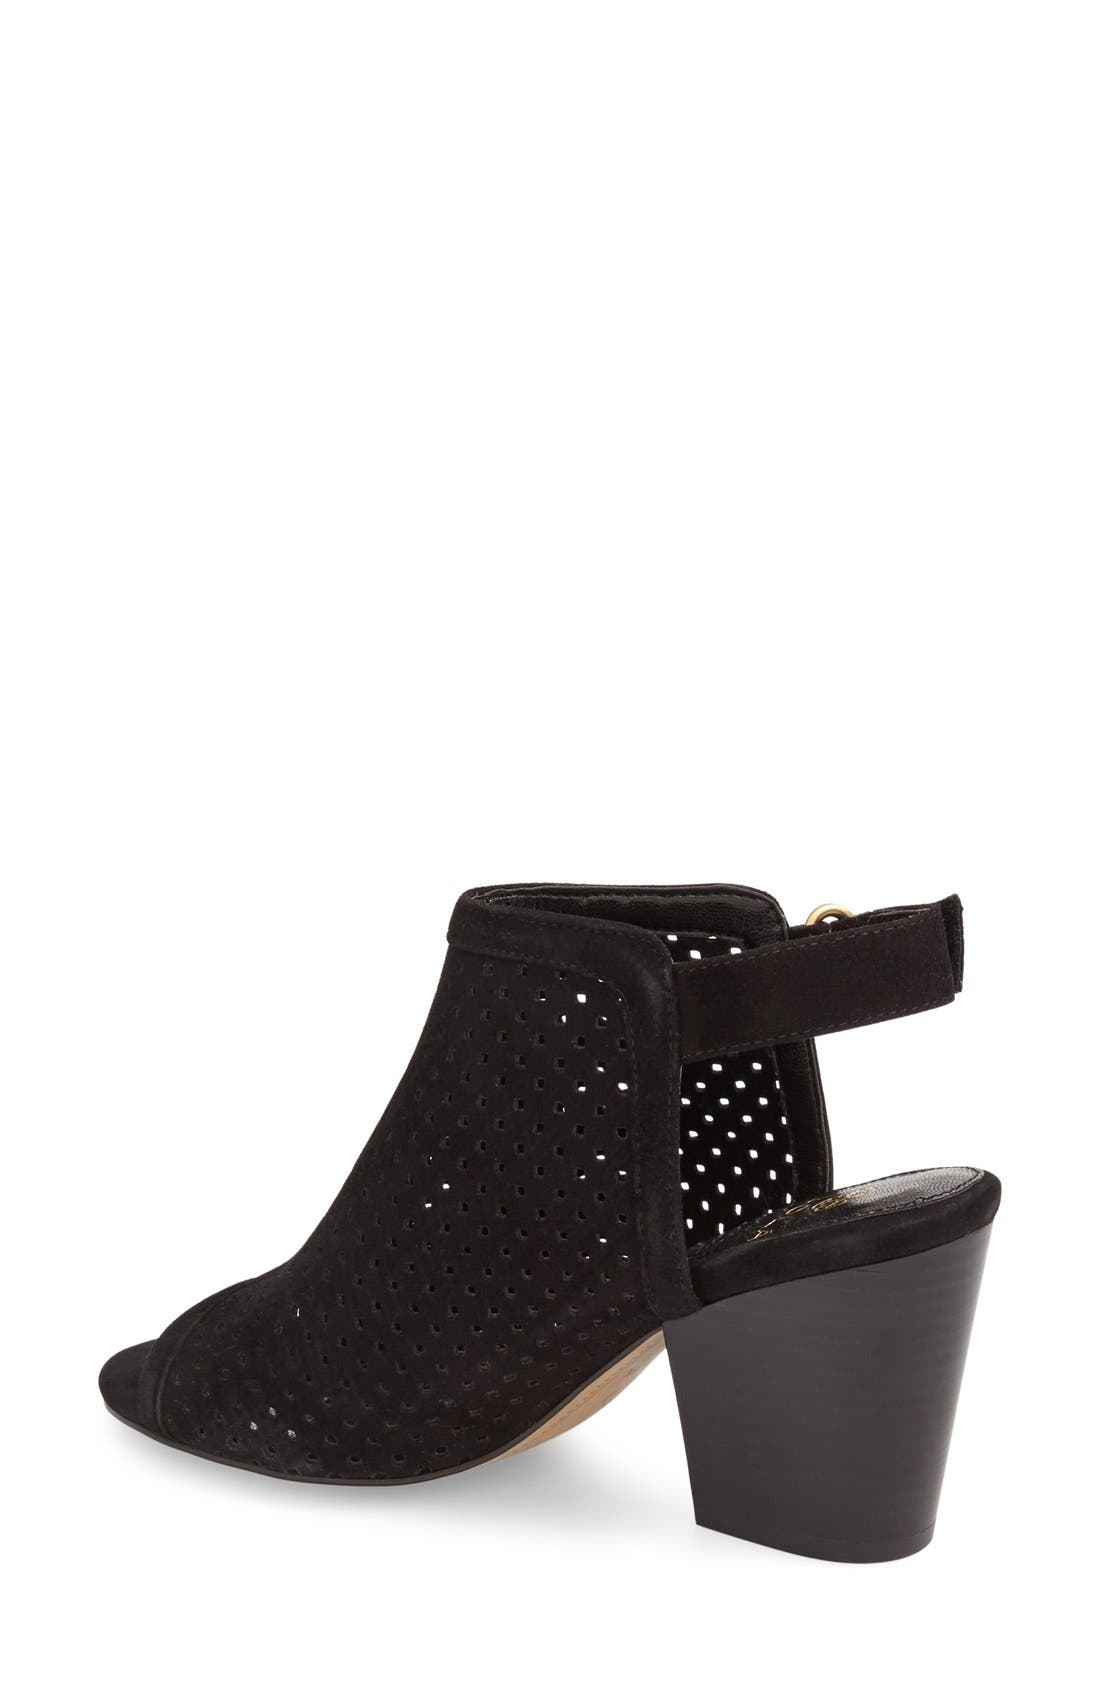 ,                             'Lora' Perforated Open-Toe Bootie Sandal,                             Alternate thumbnail 7, color,                             001